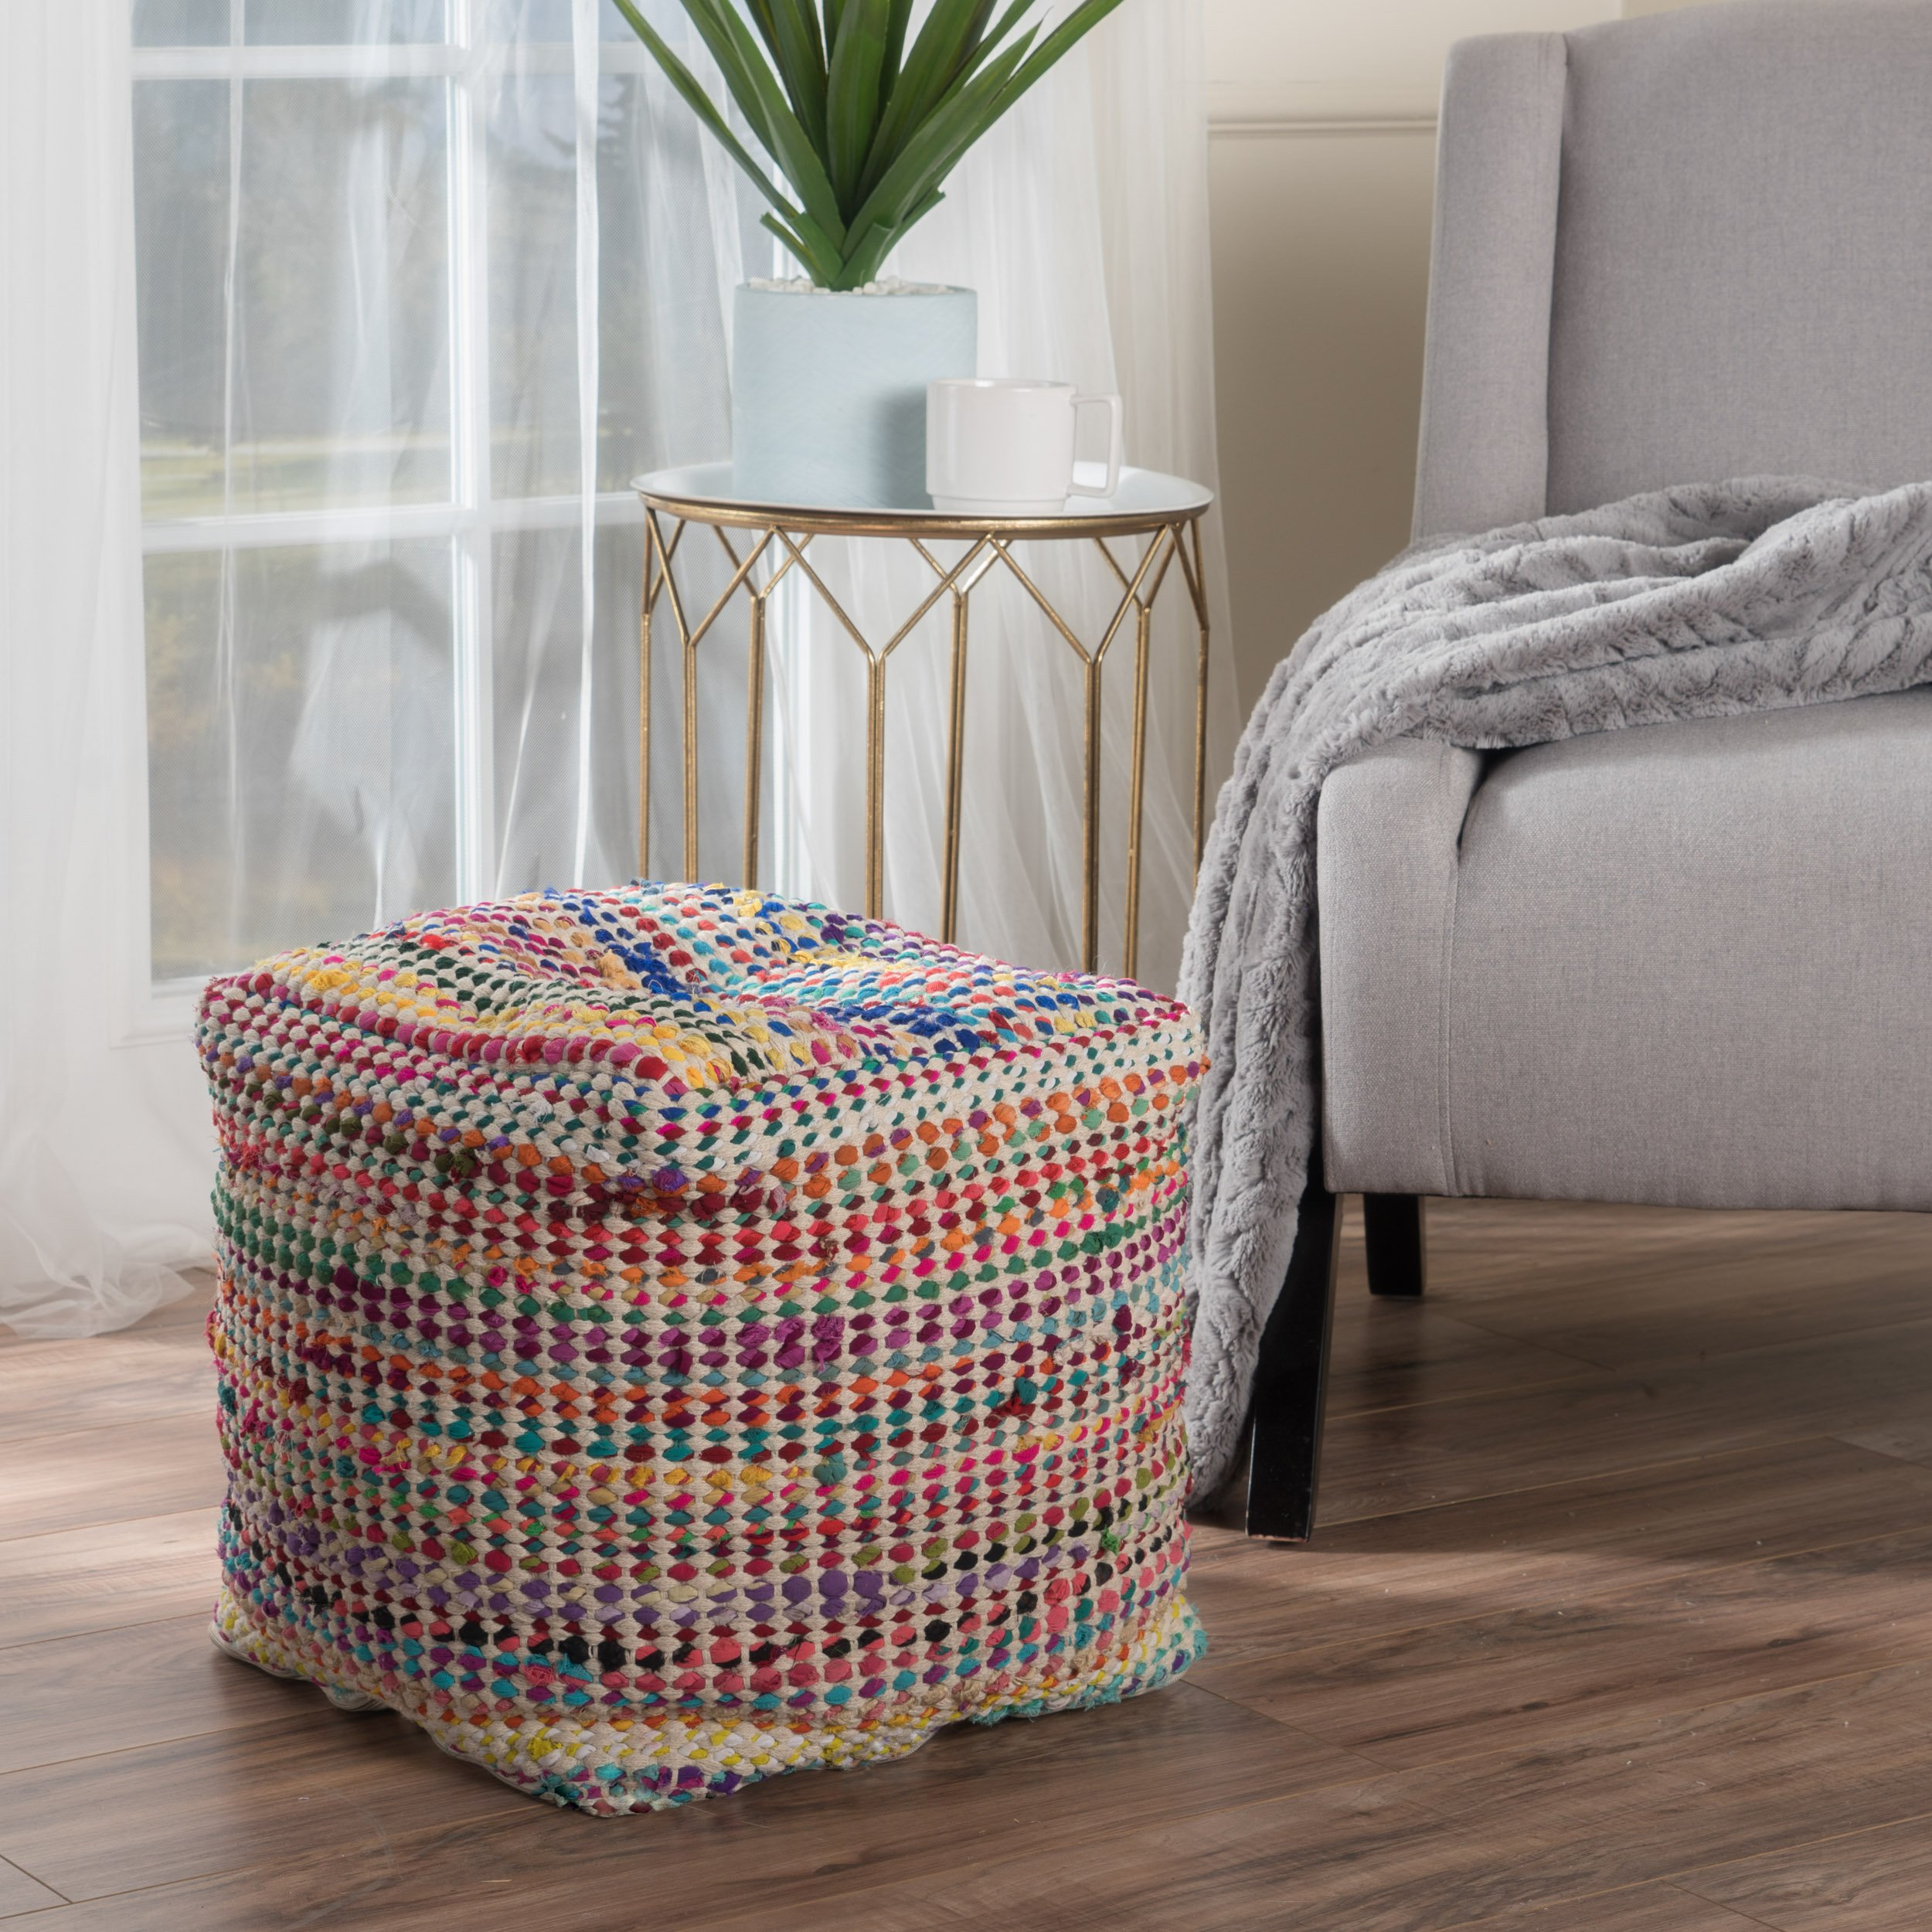 Christopher Knight Home Marcela Hand Woven Fabric Pouf (Ecru) by Christopher Knight Home